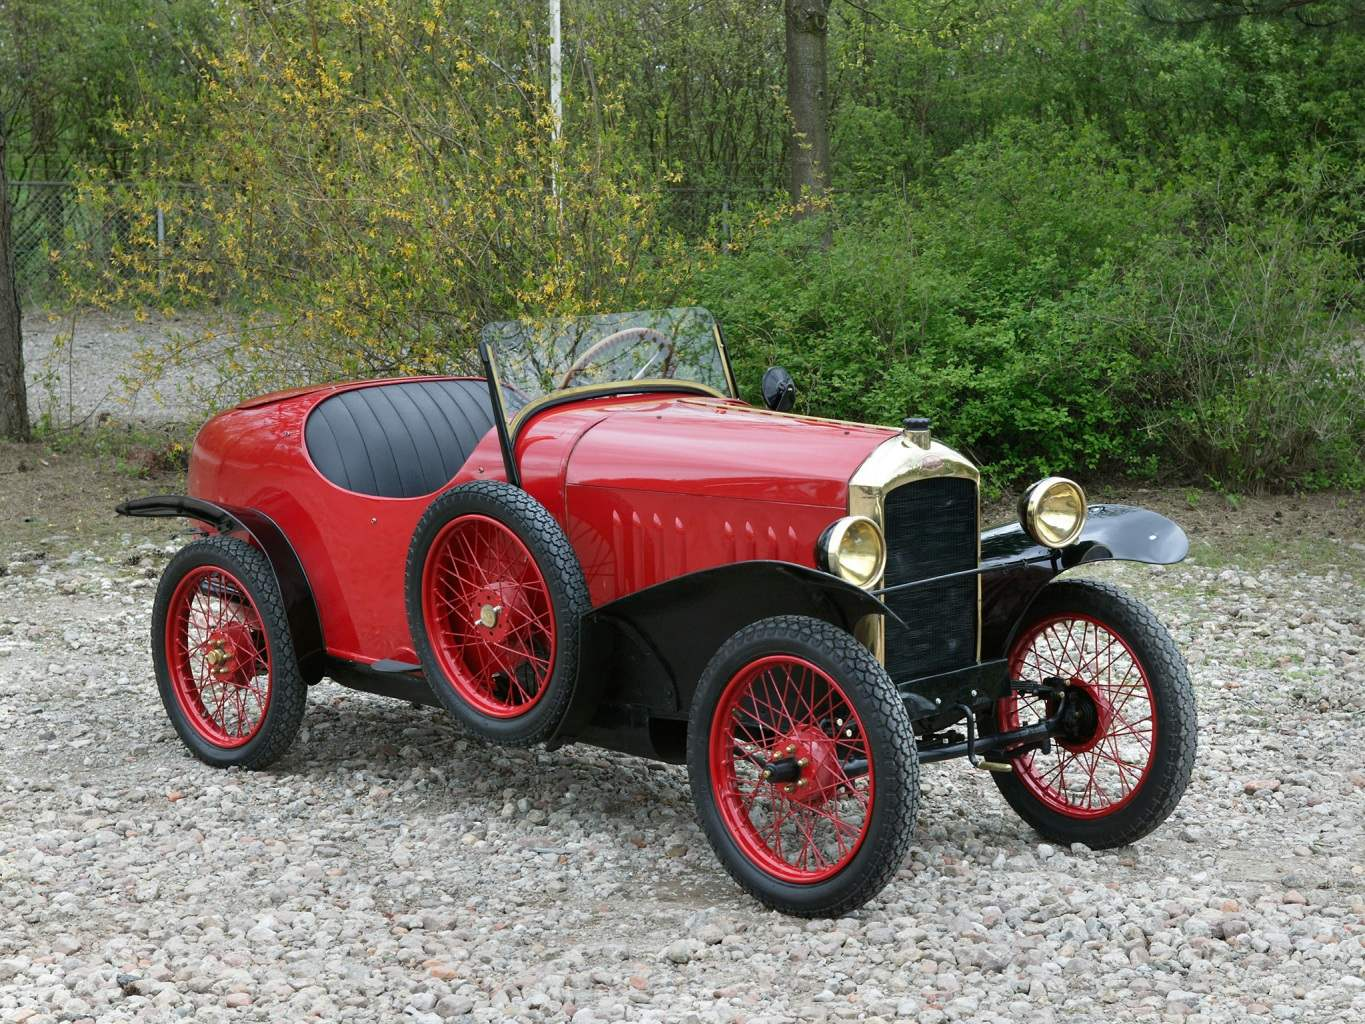 PEUGEOT 172 issue 1925 — voiturette with a claim to the design of a sports car of the time